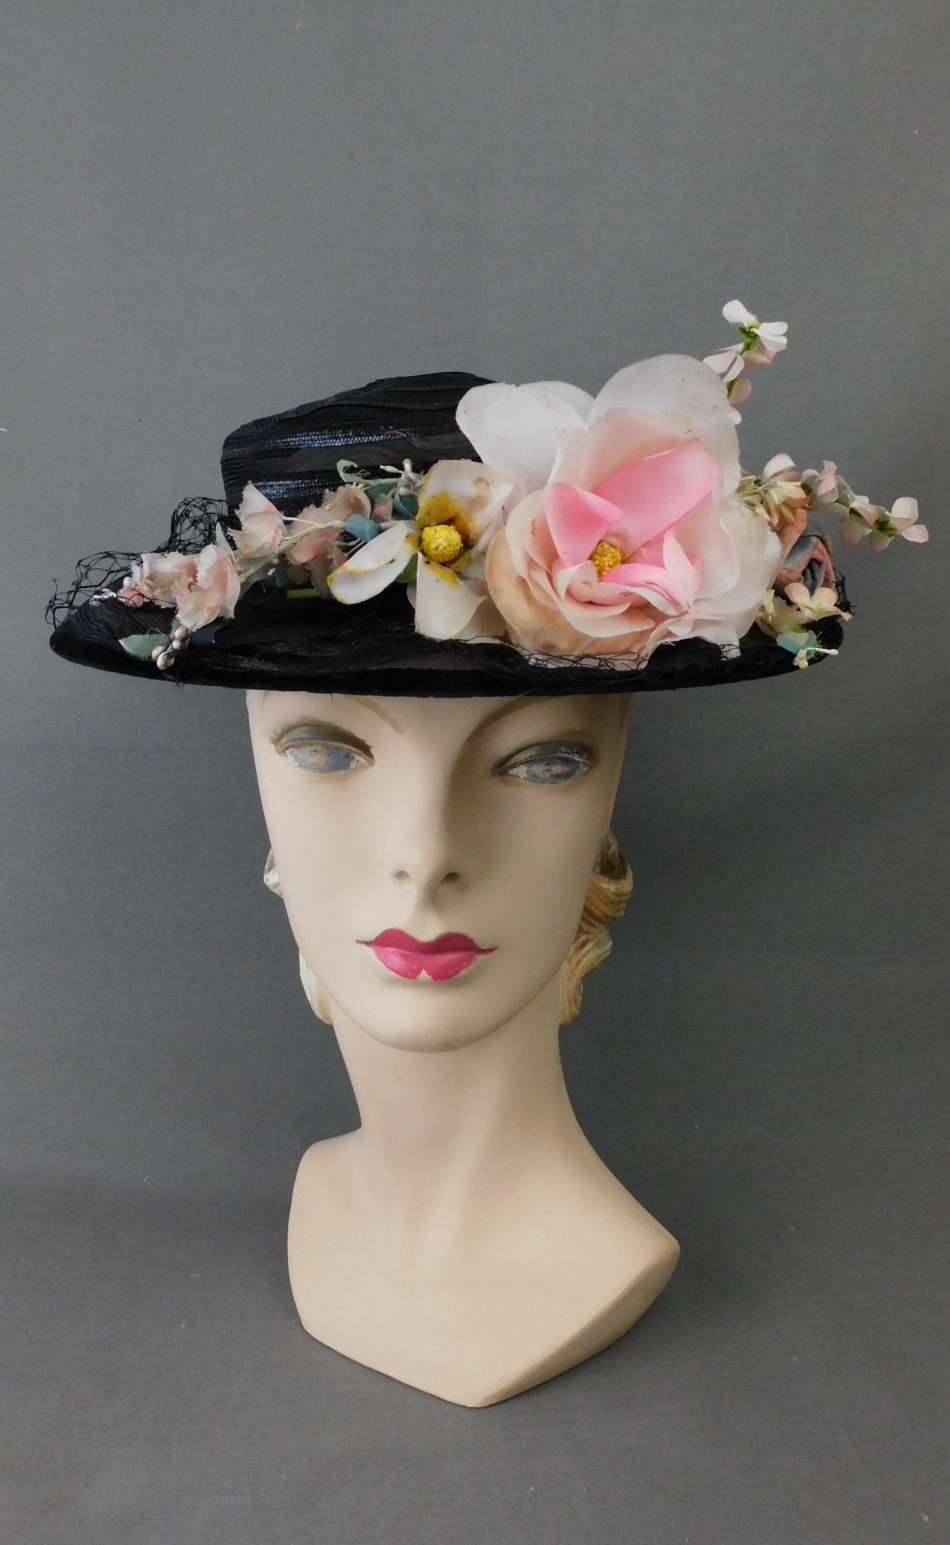 Vintage Sheer Black & Pink Floral 1940s Hat, New York Creation